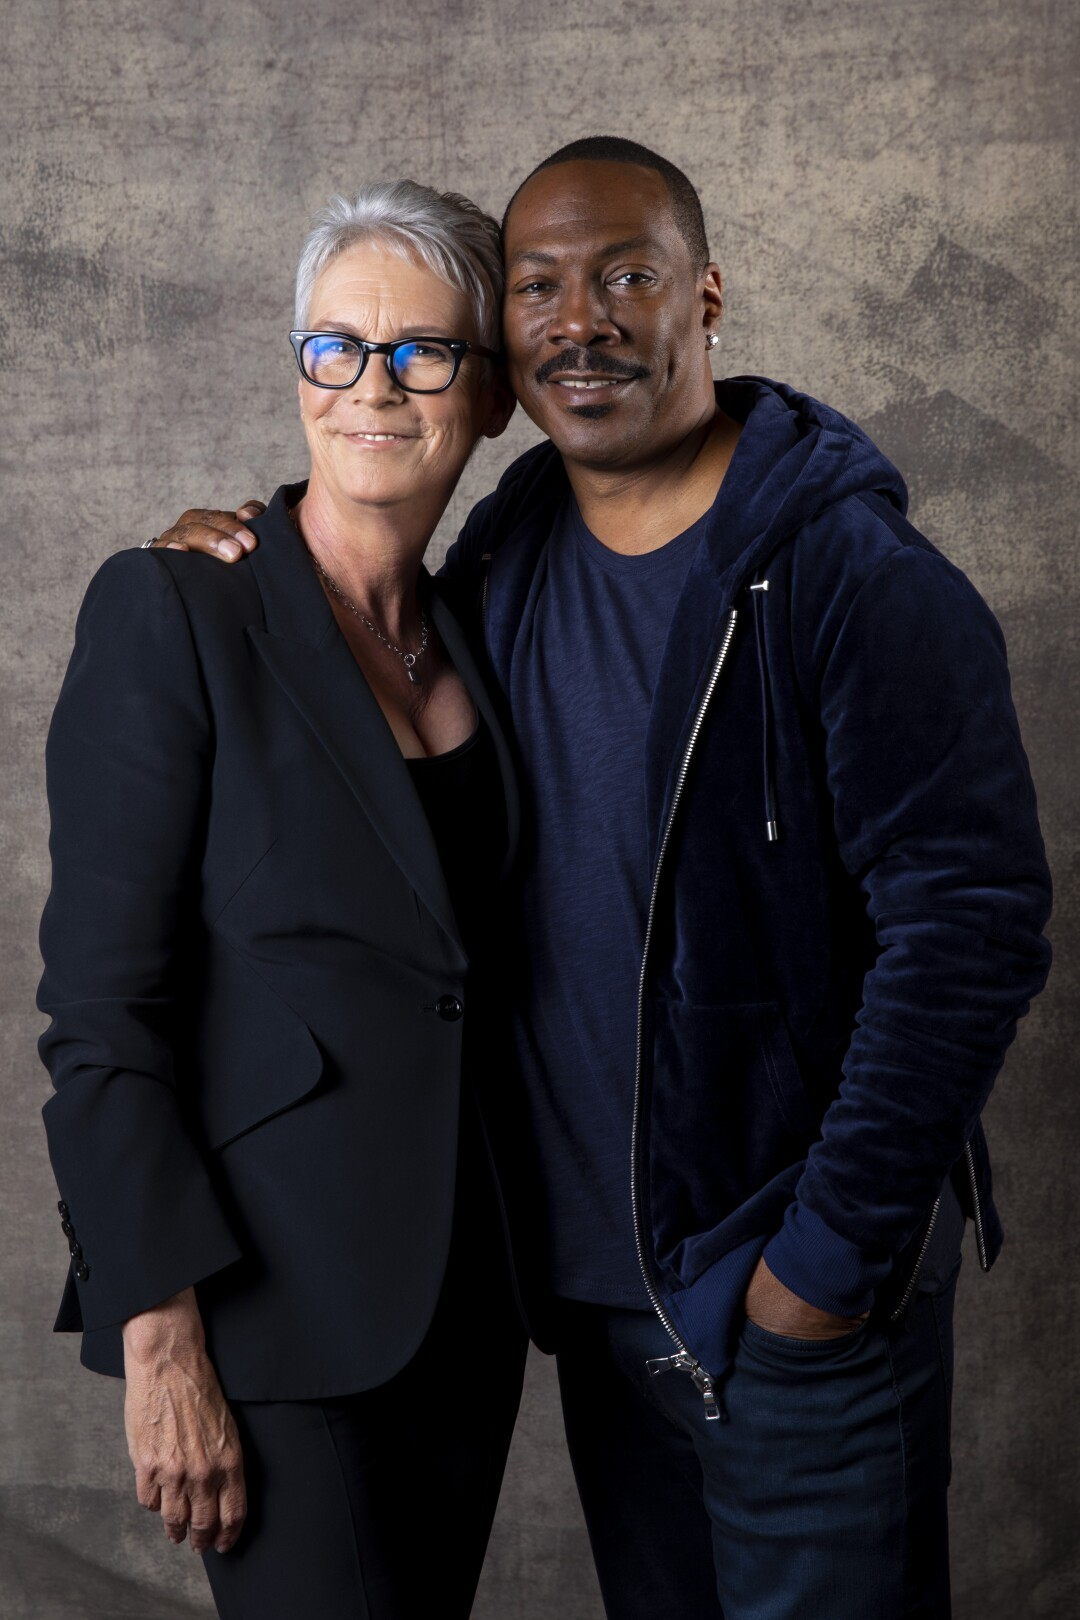 Jamie Lee Curtis and Eddie Murphy